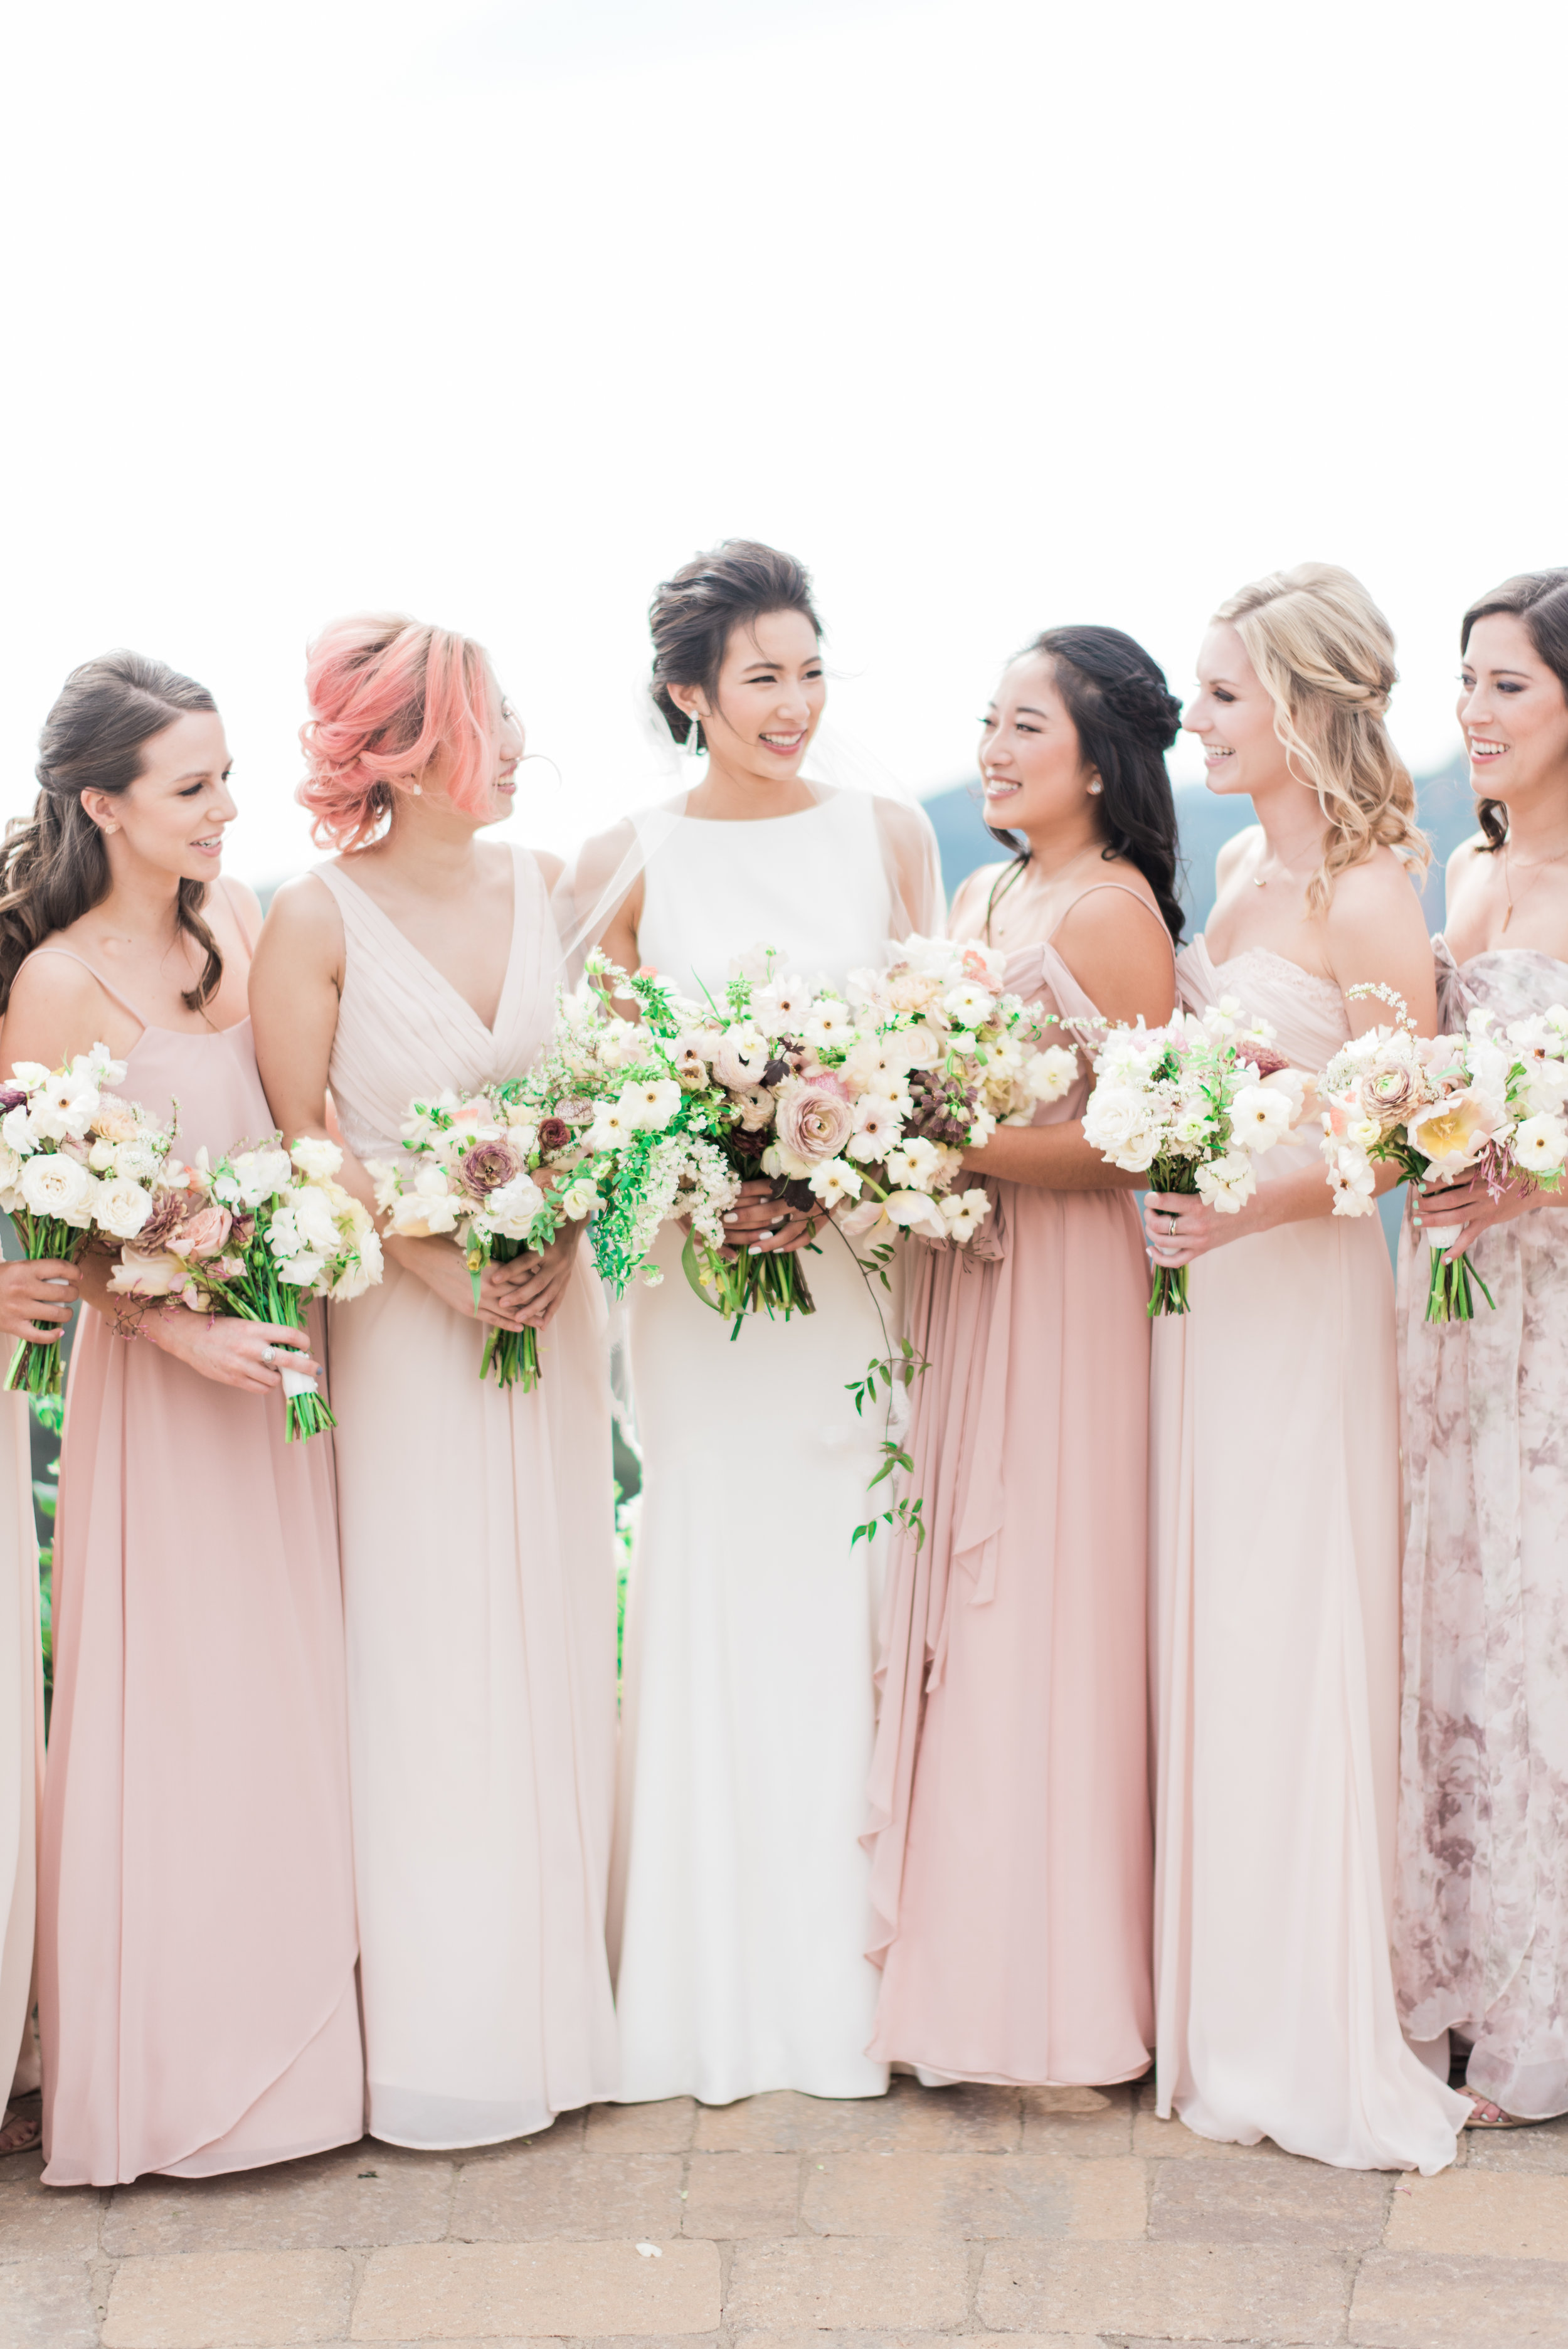 Spring Wedding at Romantic Hilltop Vineyard Malibu Rocky Oaks Sally Pinera Finding Flora Bridesmaids Bouquets Bridal Bouquets So Happi Together